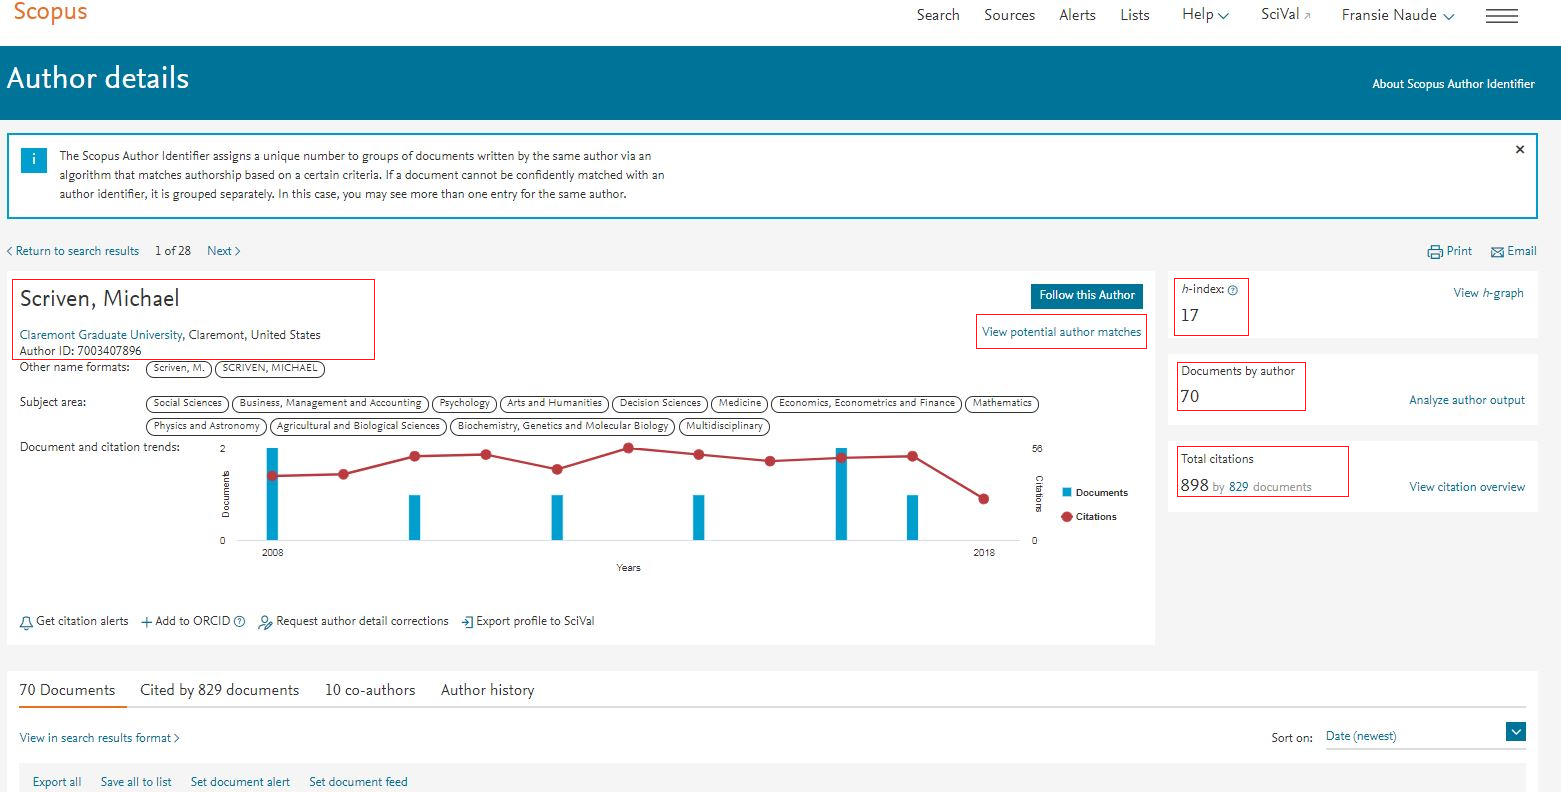 Scopus: View Scopus Author profile summary metrics